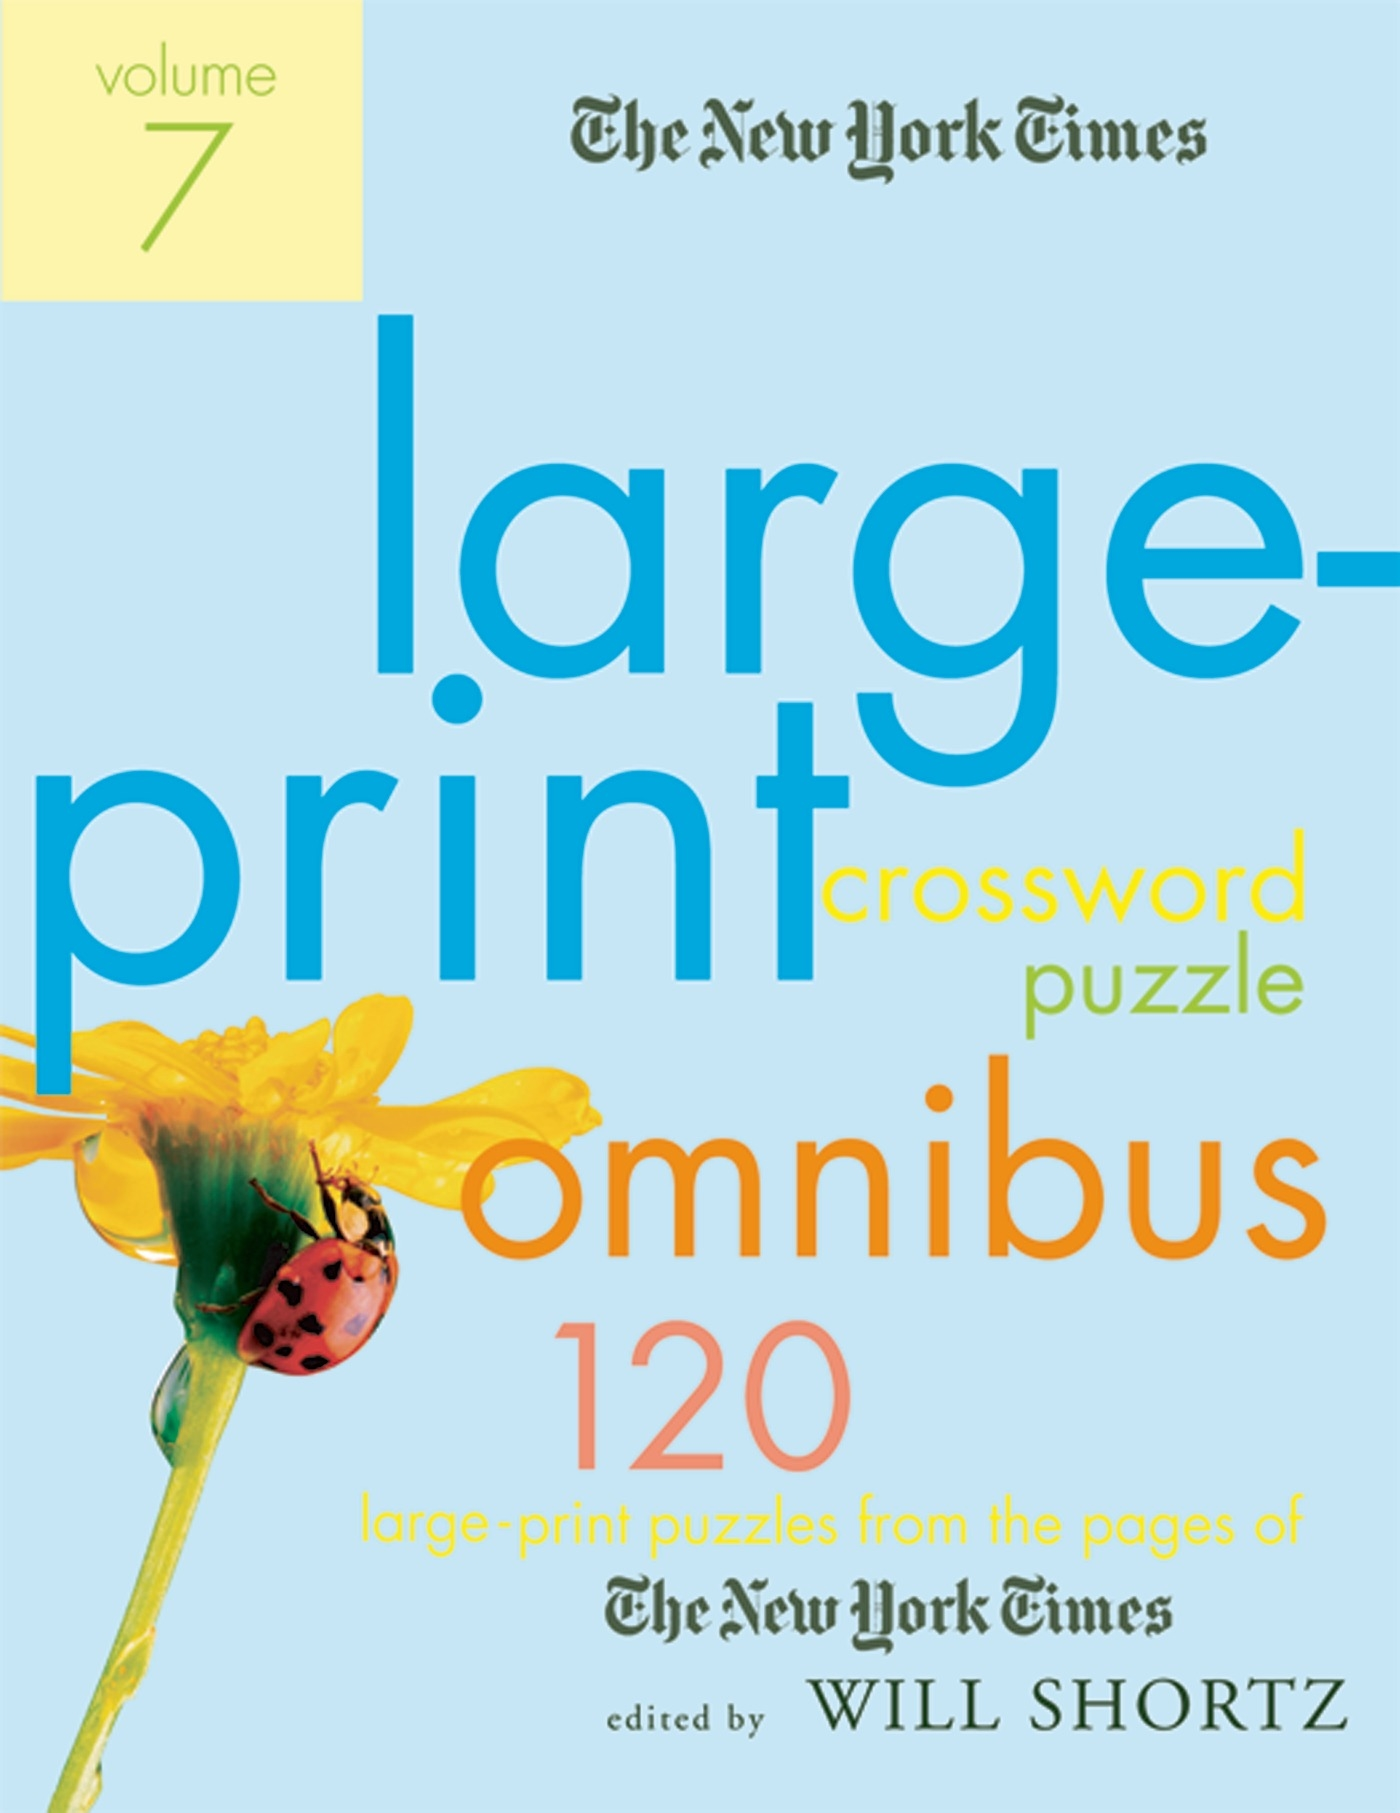 The New York Times Large Print Crossword Puzzle Omnibus Volume 7 120 Puzzles From Pages Of